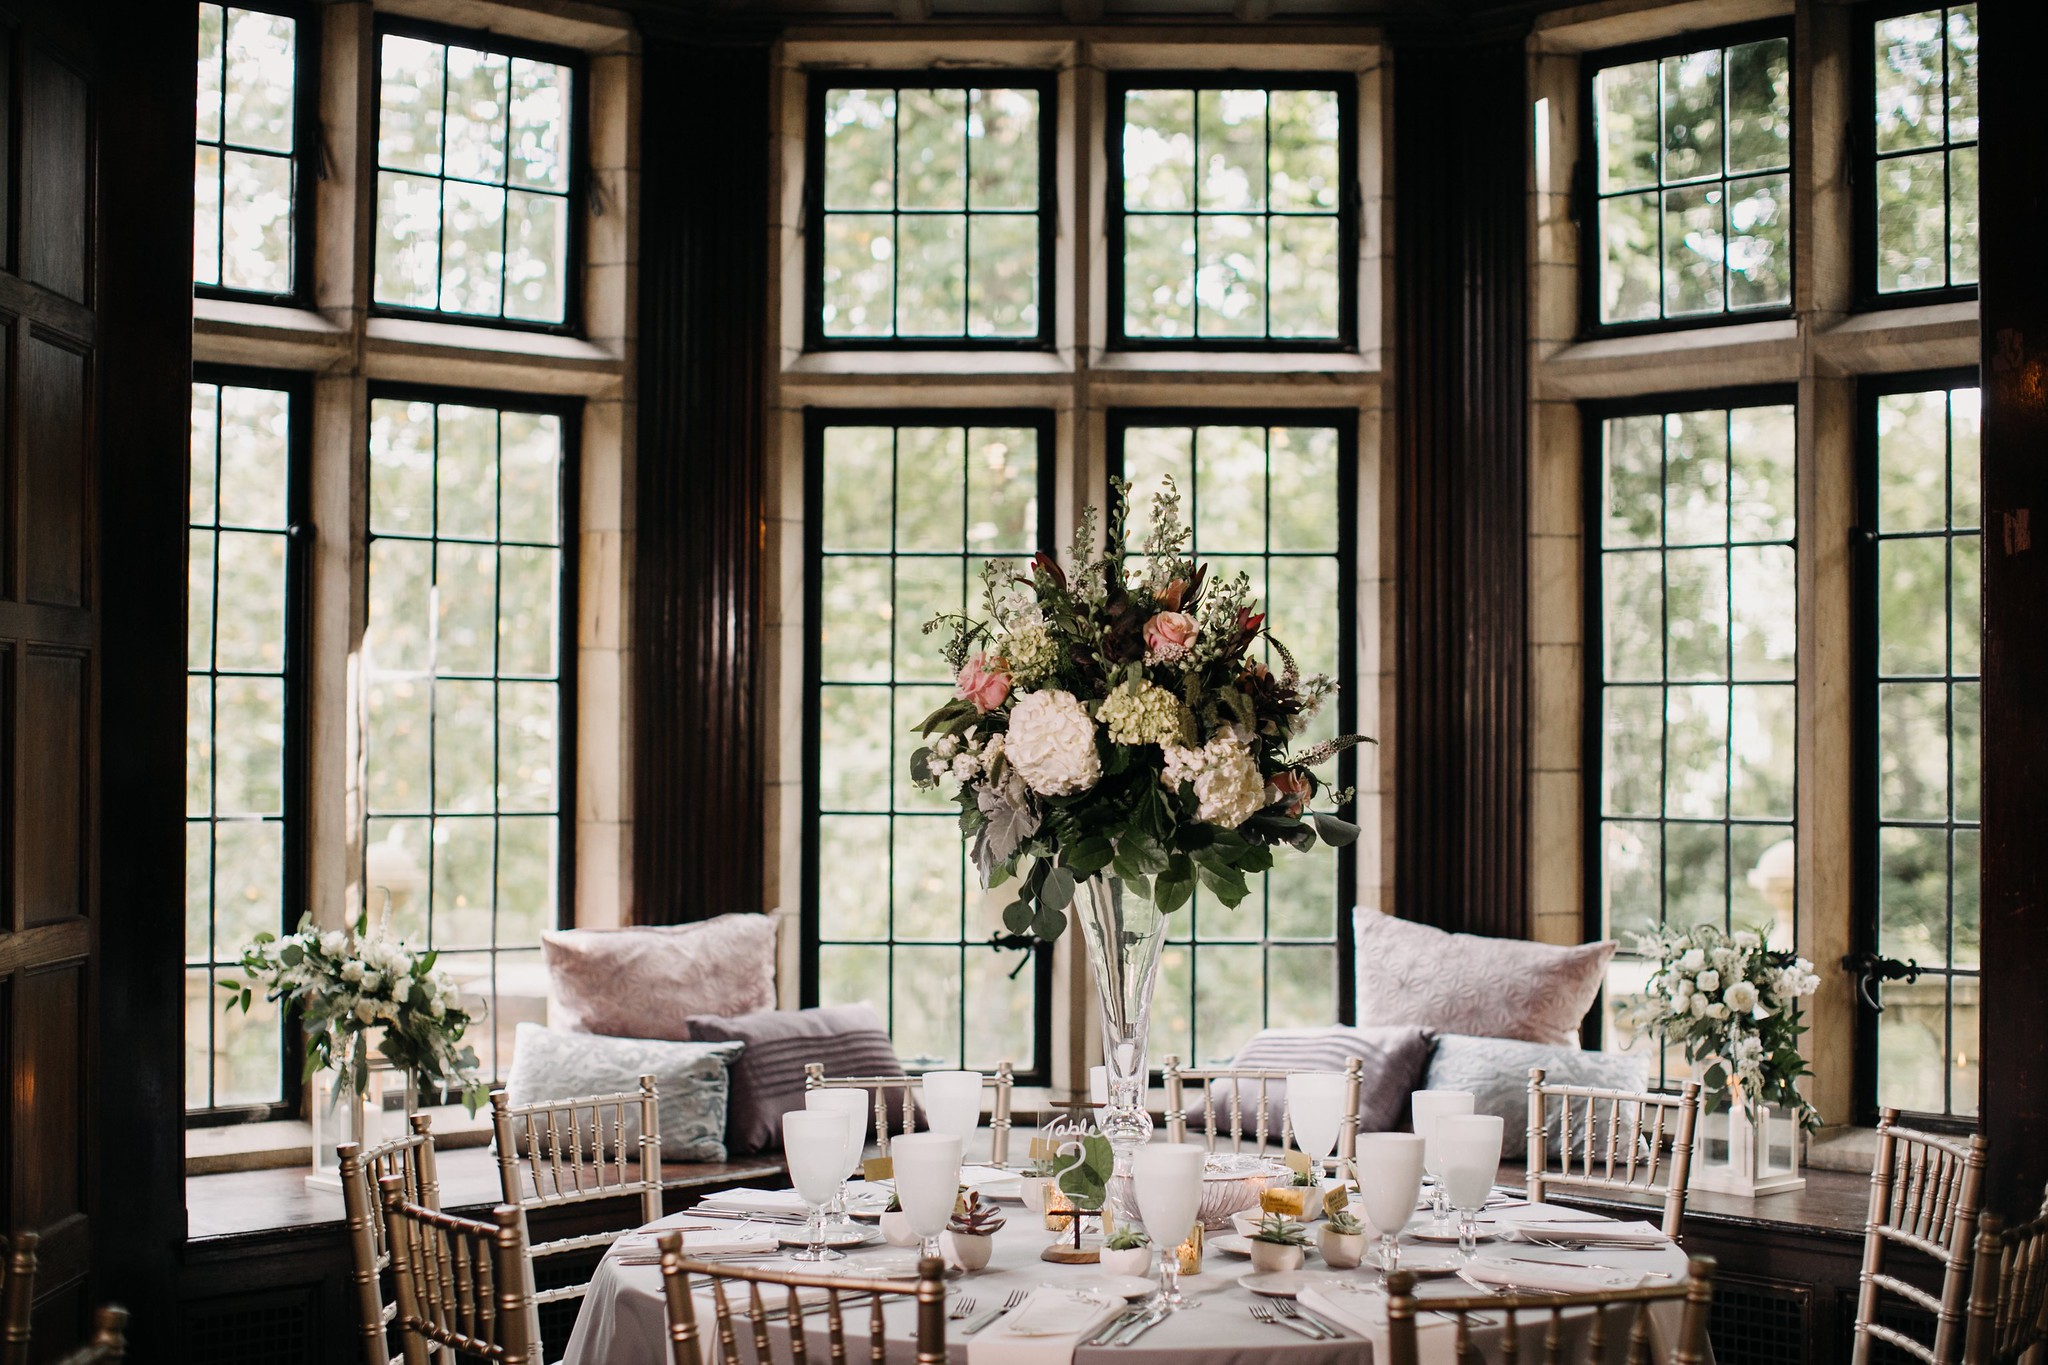 Flowers with greenery in a vase on a round table by large windows.